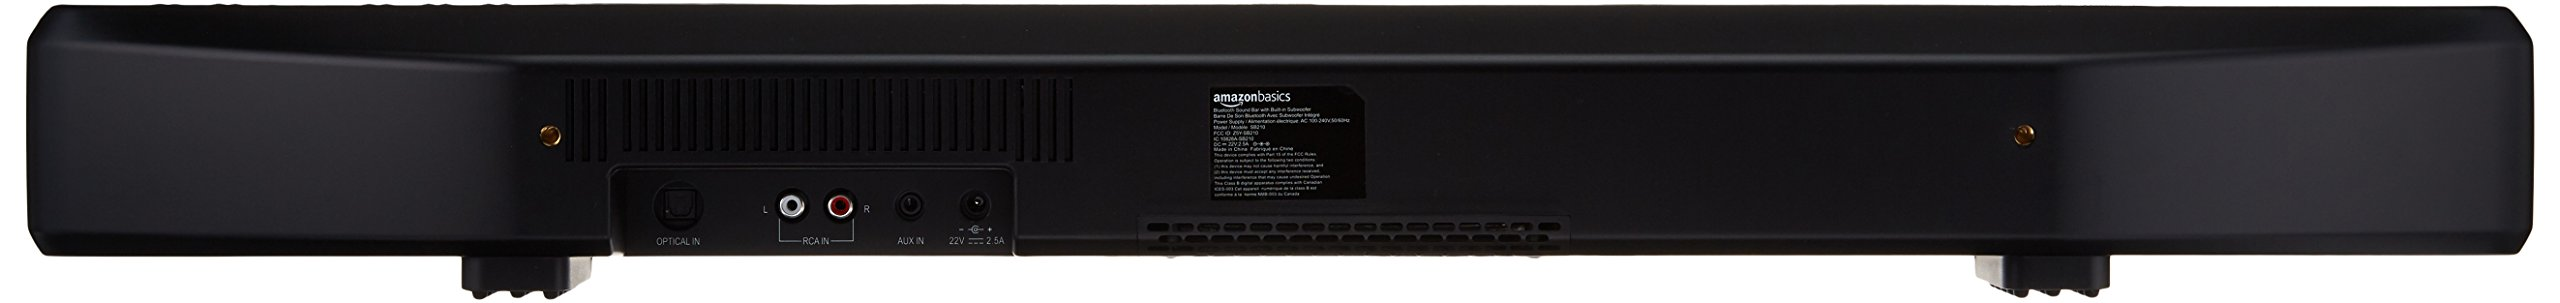 AmazonBasics 2.1 Channel Bluetooth Sound Bar with Built-In Subwoofer by AmazonBasics (Image #3)